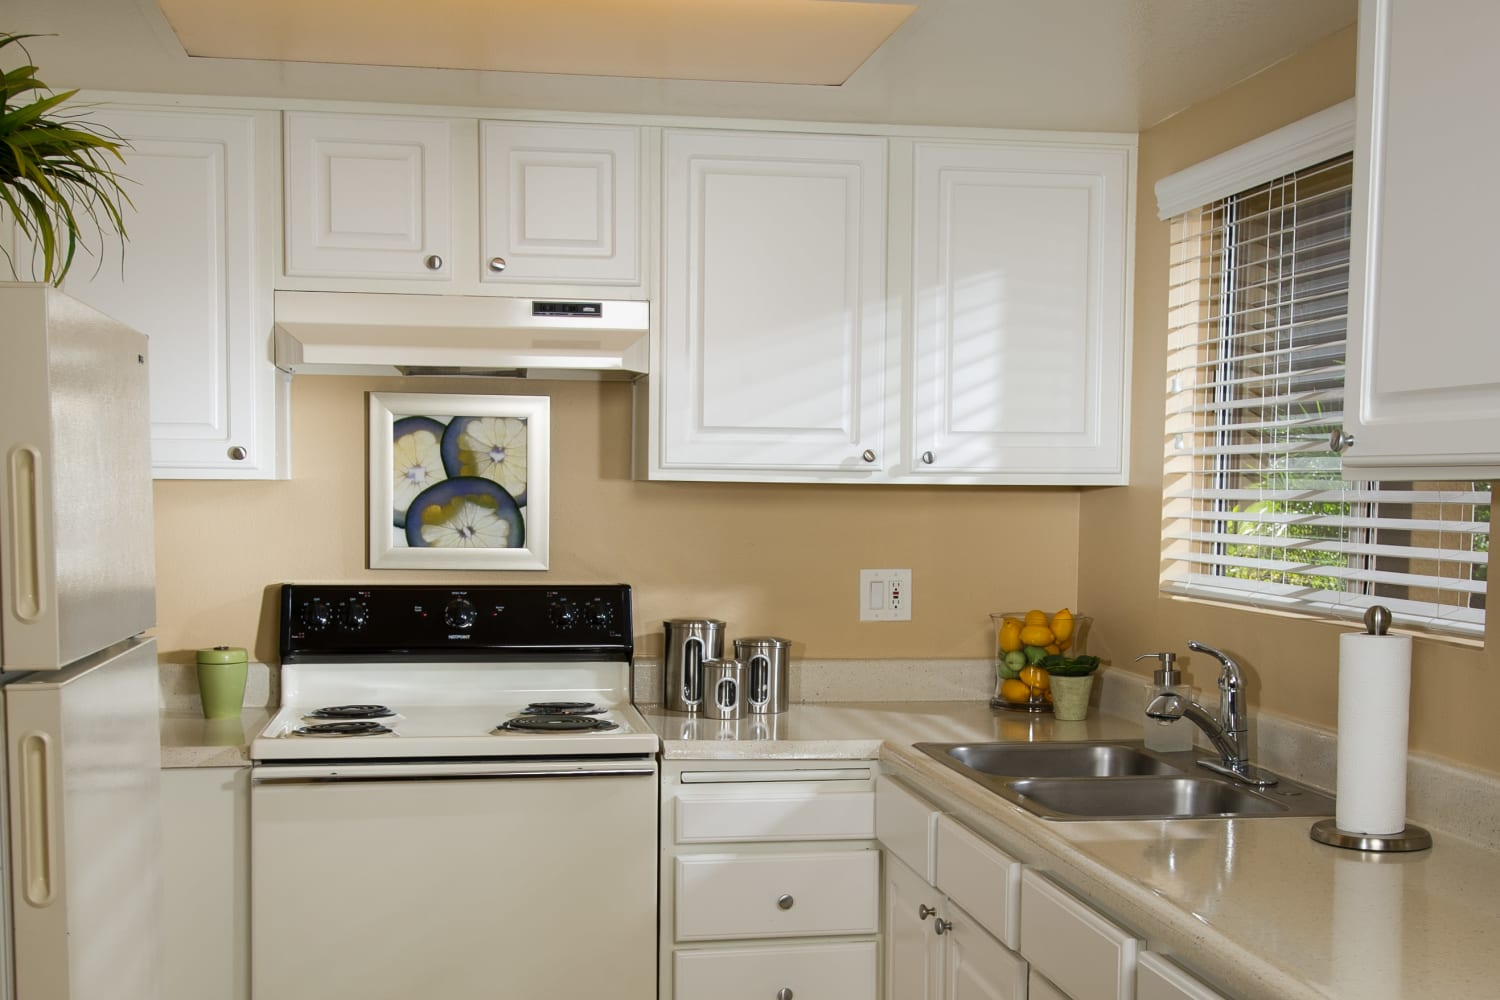 Kitchen at Legacy at Westglen in Glendale, California